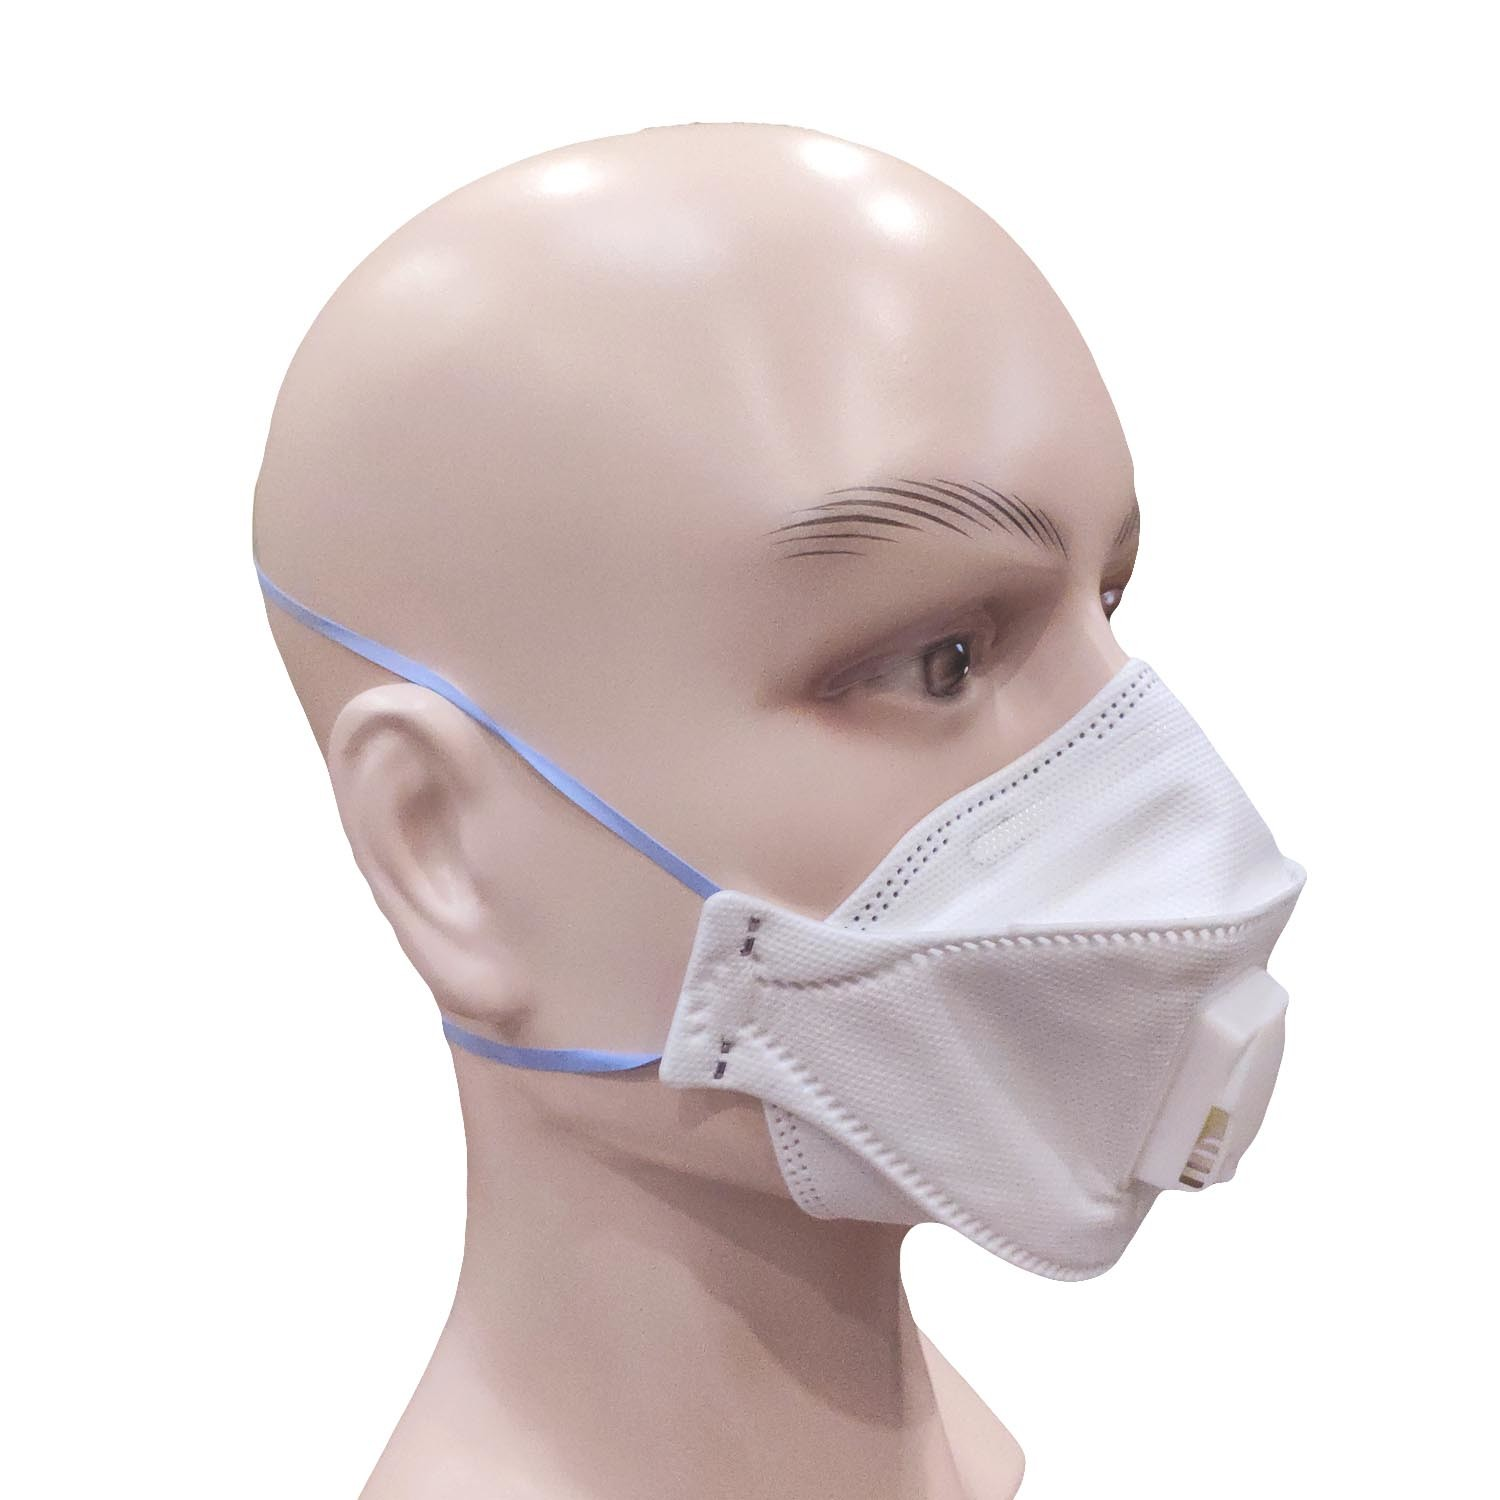 hot Item Mask 9332 Respirator Like Valve Nonwoven Disposable 3m 9322 En149 N95 With Dust